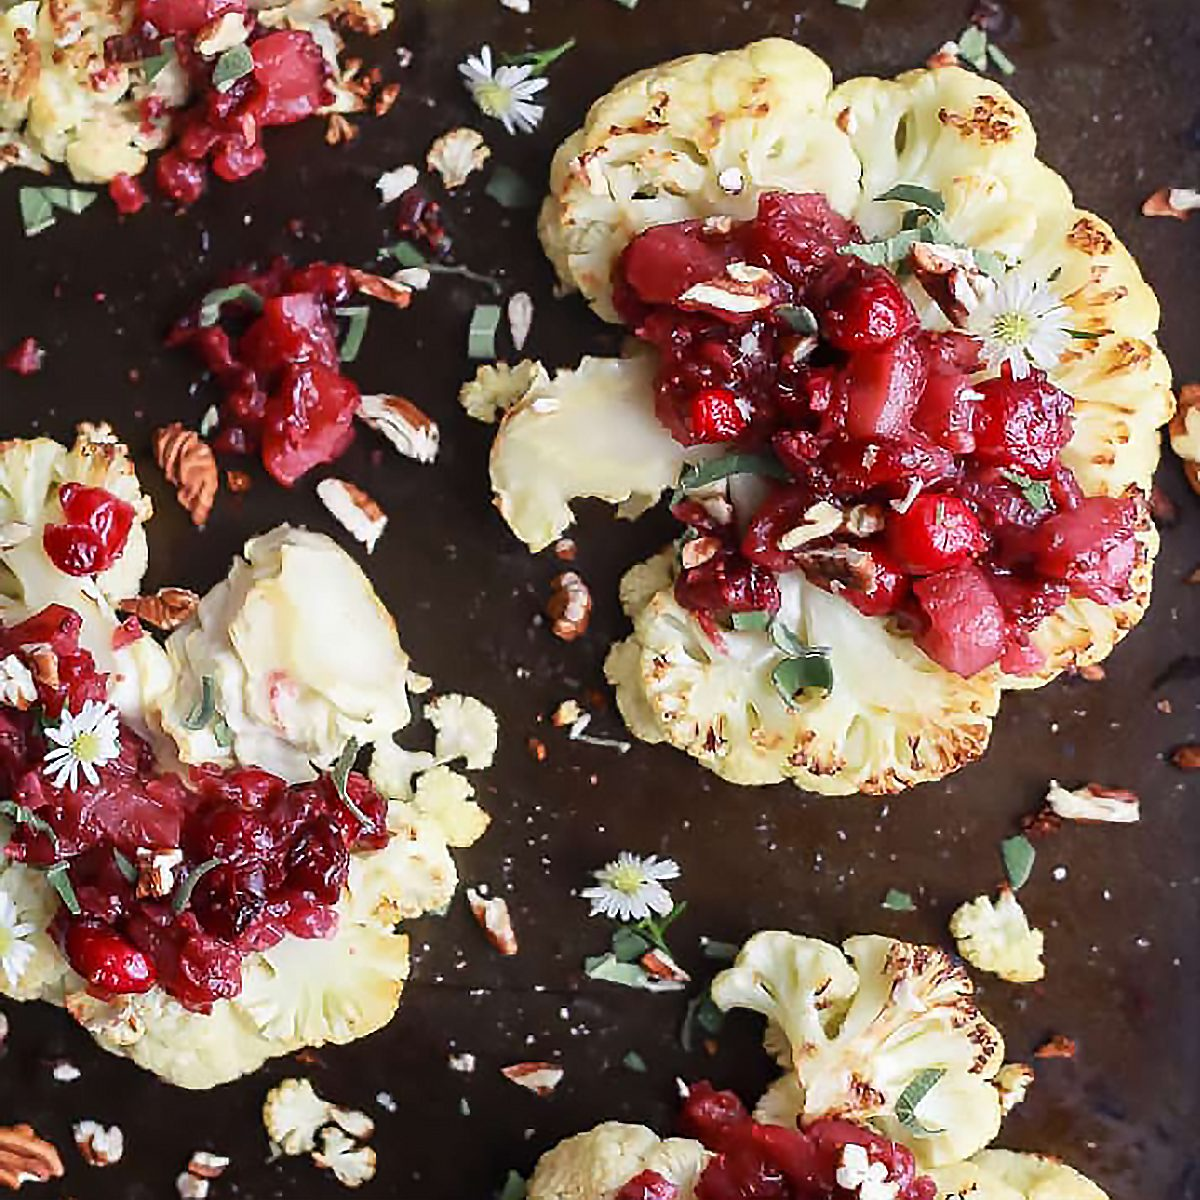 Roasted Cauliflower Steaks with Cranberry Apple Chutney for a Vegetarian Thanksgiving dish